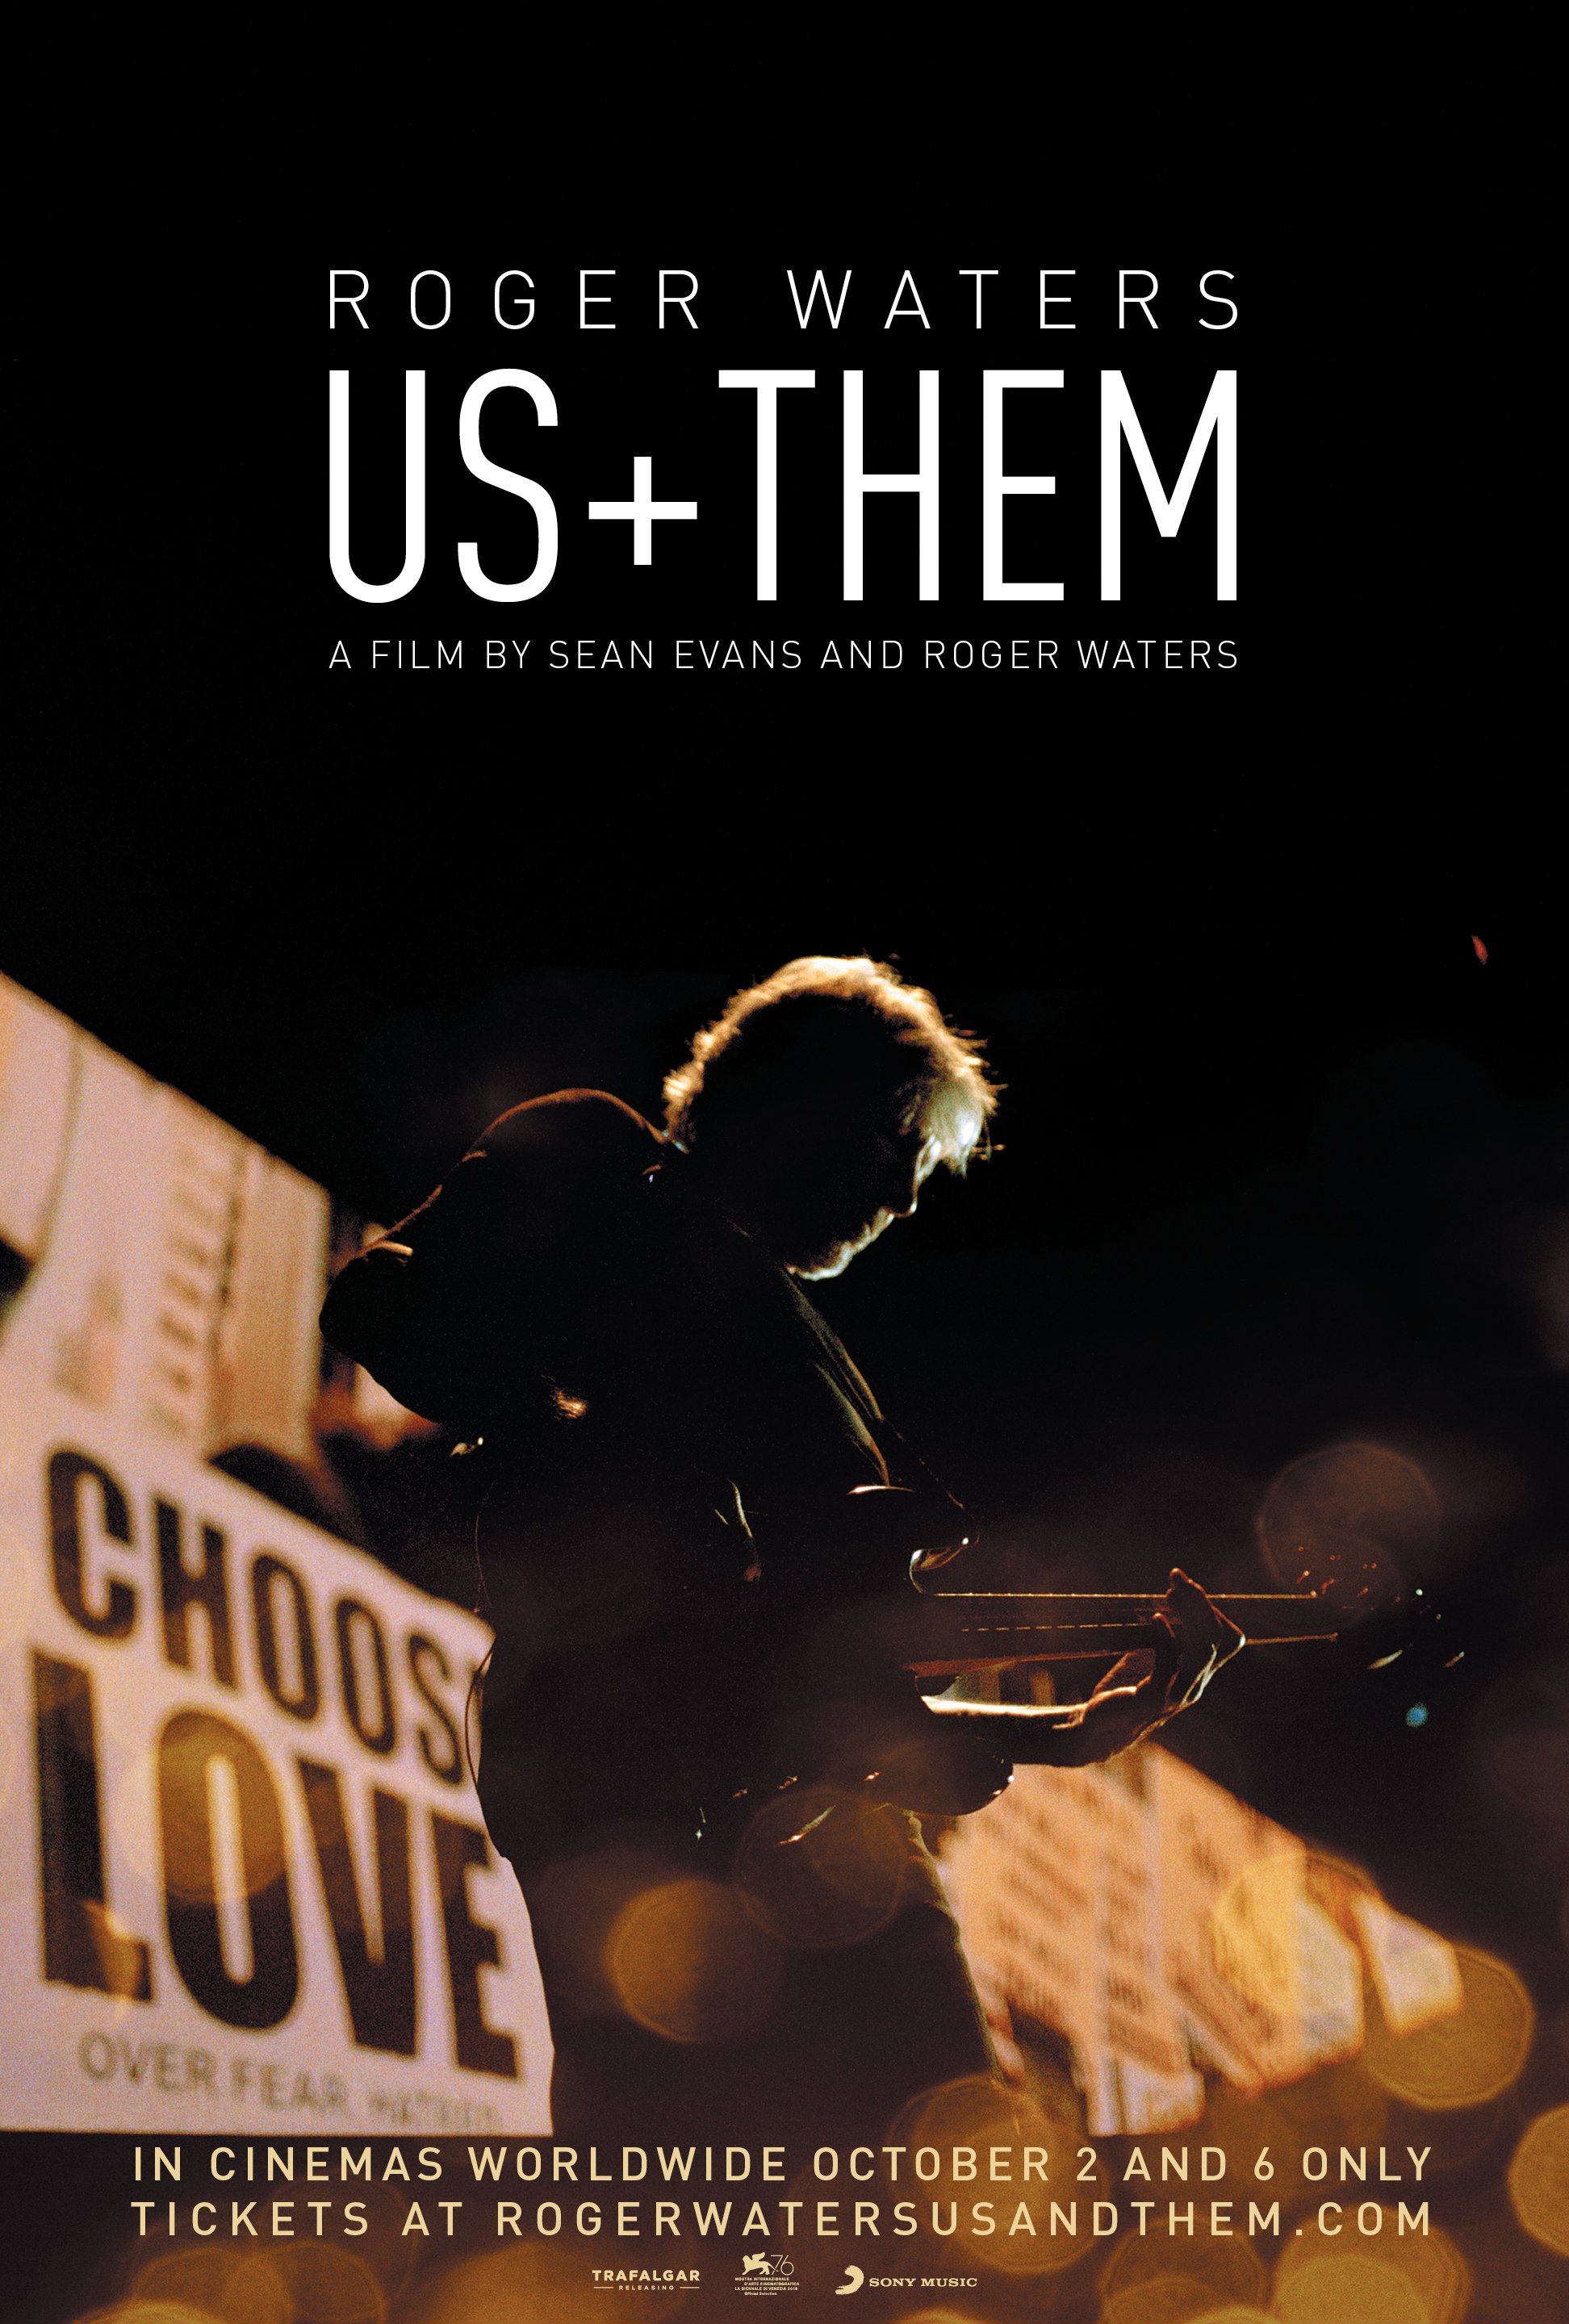 Poster for Roger Waters Us + Them